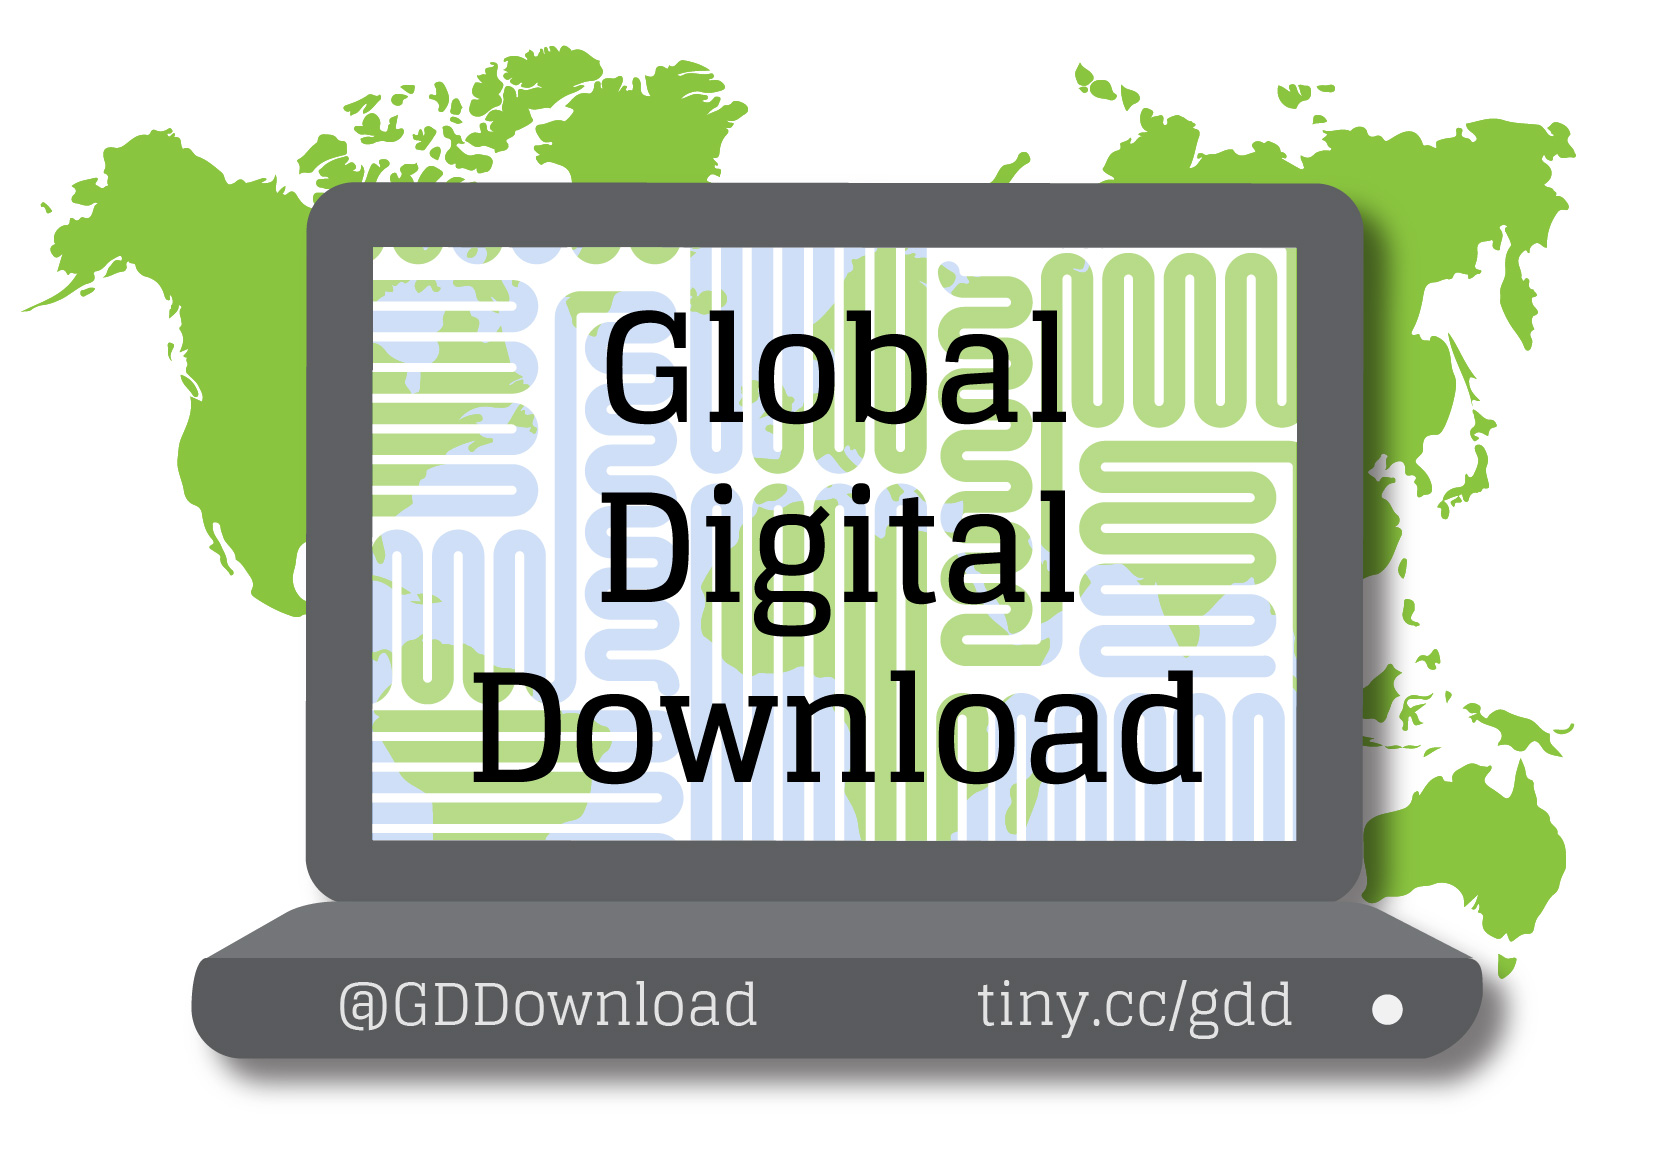 - The Global Digital Download is a weekly email digest that aggregates news, events and opportunities occurring in the nexus between internet policy and human rights in order to increase awareness of issues involving online freedom of expression, privacy, censorship, and new technologies.The GDD also has a social media presence (@GDDownload) to bring you the most up-to-date alerts and news.